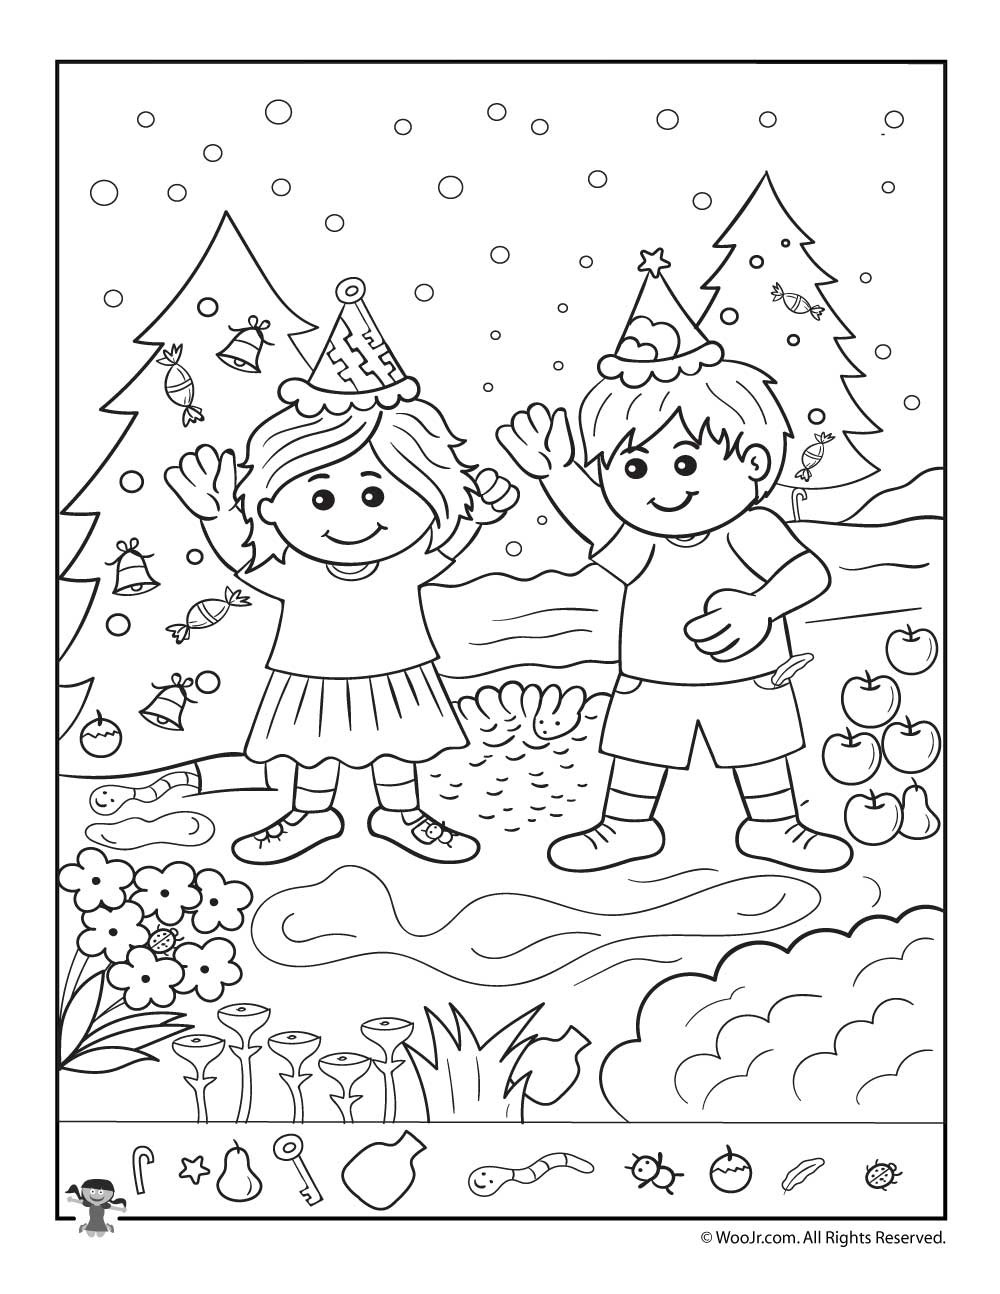 Christmas Hidden Picture Puzzles Printable the Kids at Christmas Hidden Picture Page